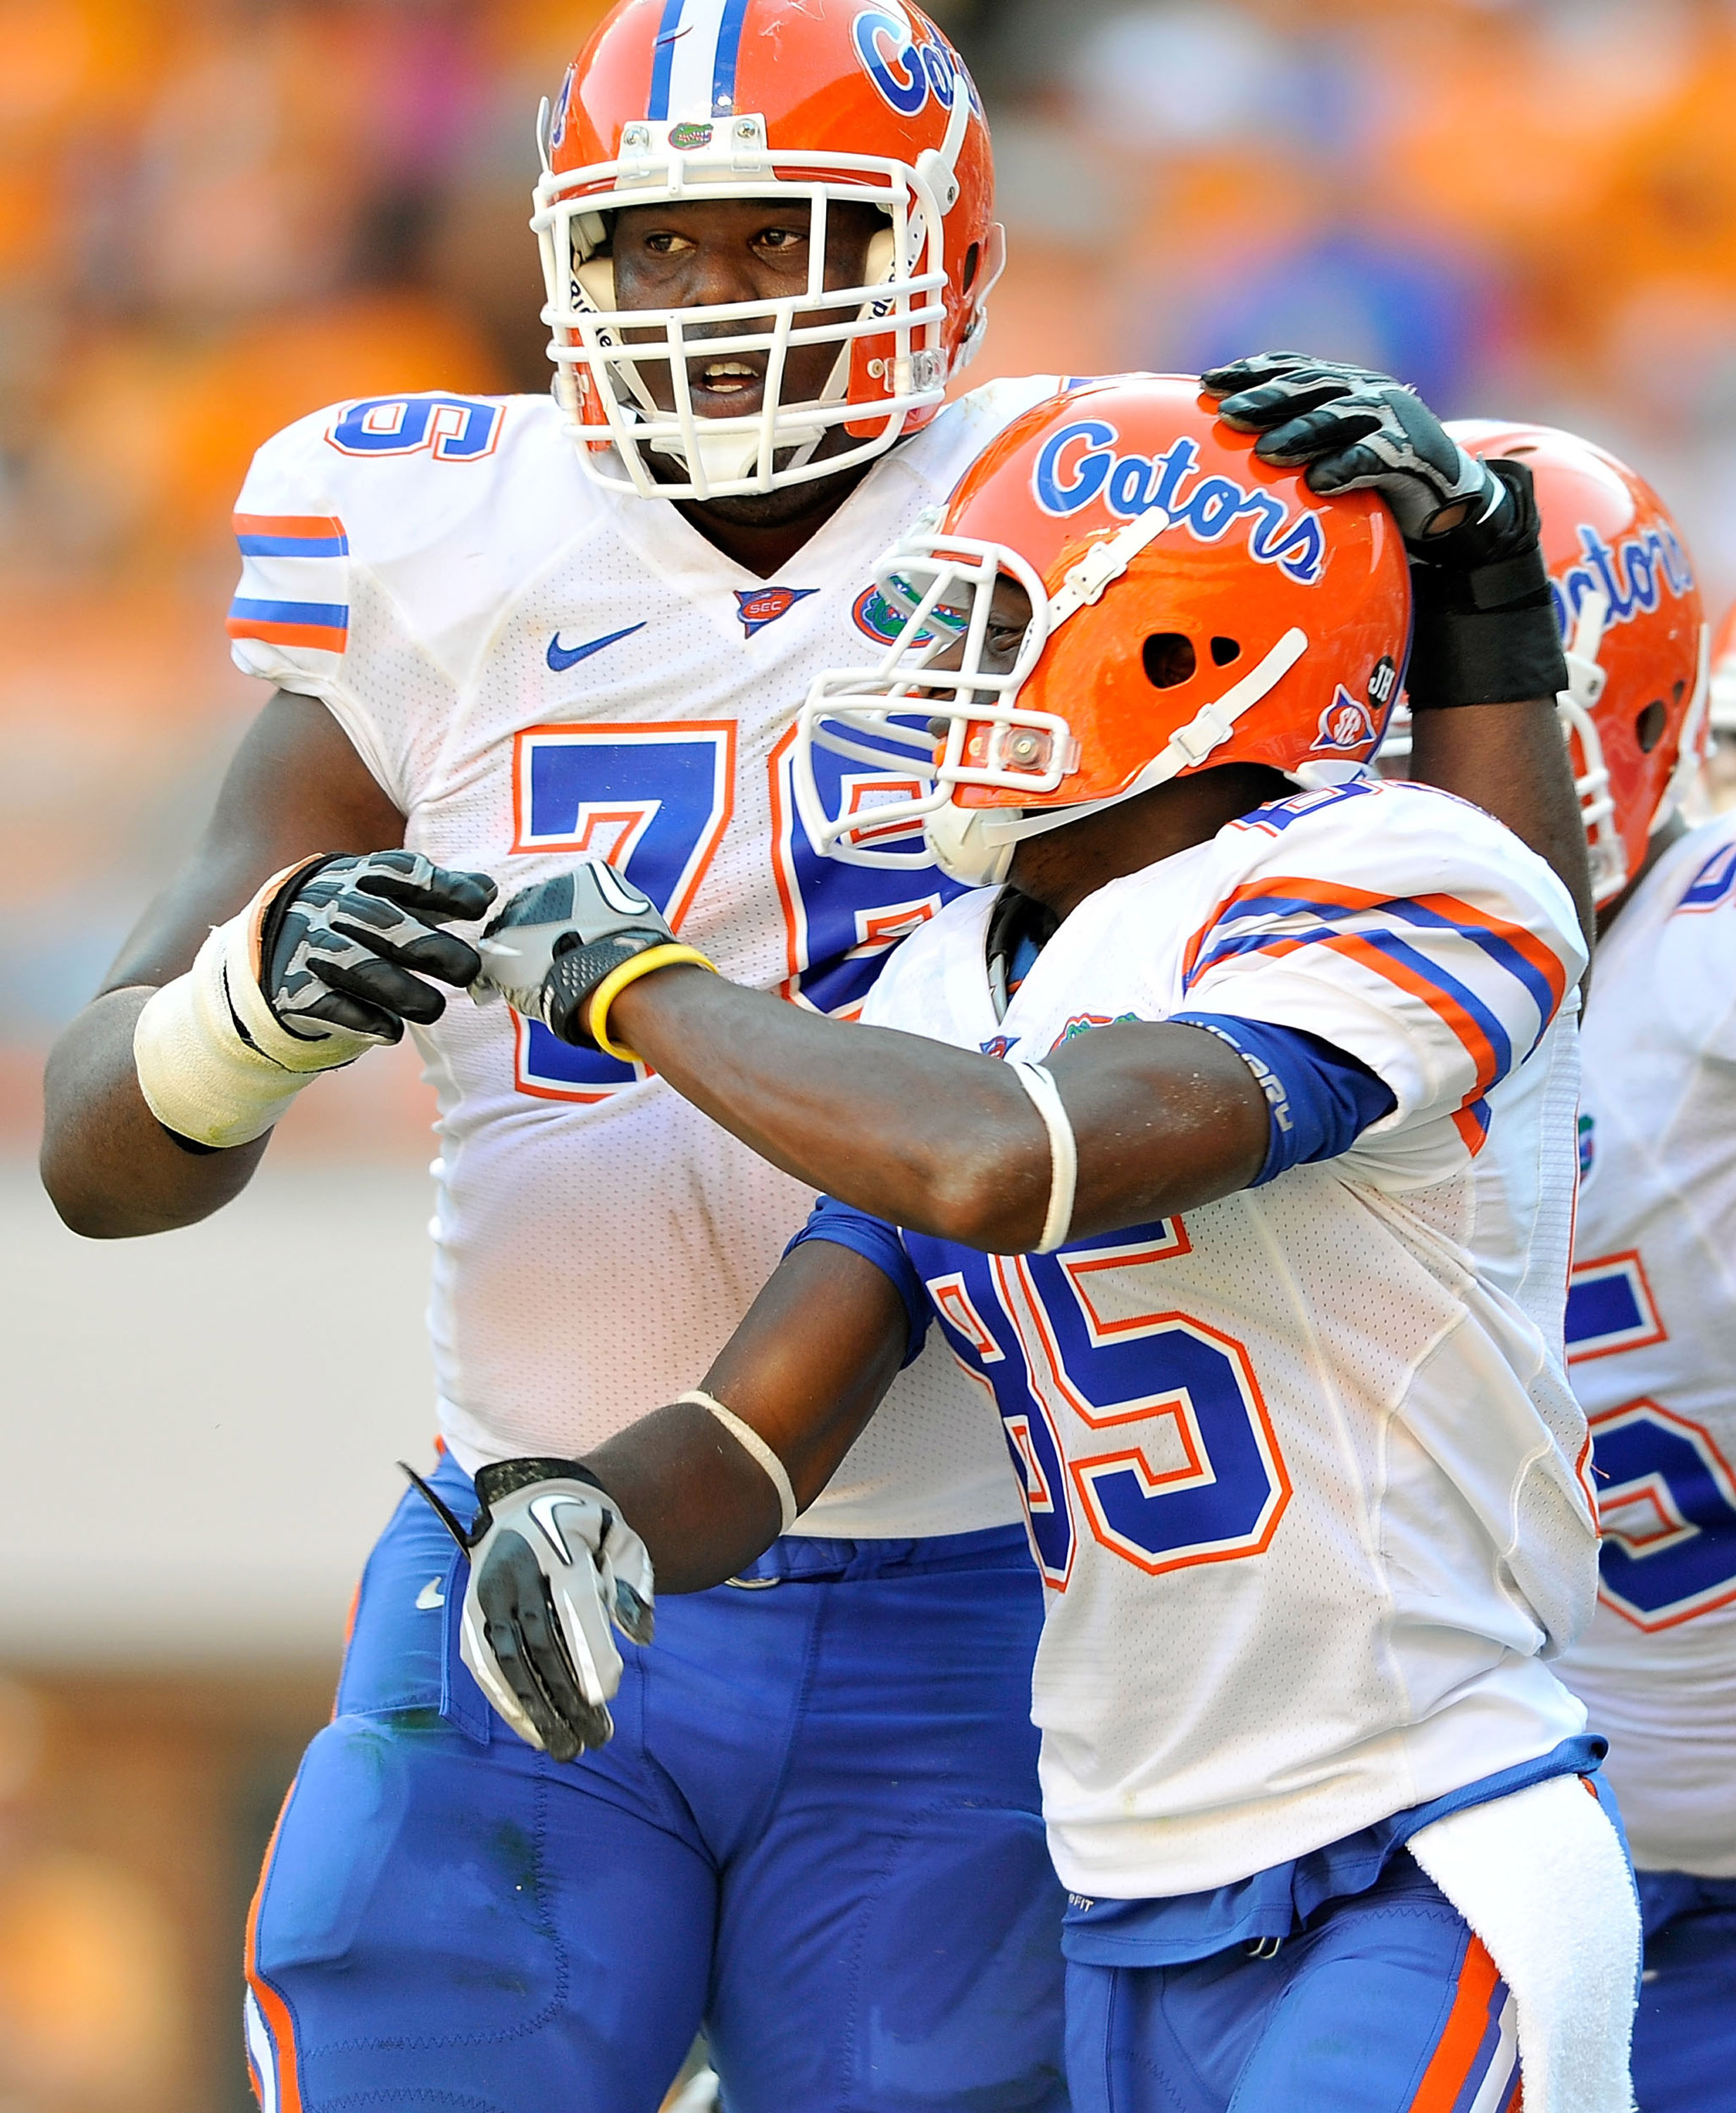 KNOXVILLE, TN - SEPTEMBER 18:  Frankie Hammond #85 celebrates with teammate Marcus Gilbert #76 of the Florida Gators after scoring a touchdown aganst the Tennessee Volunteers at Neyland Stadium on September 18, 2010 in Knoxville, Tennessee. Florida won 31